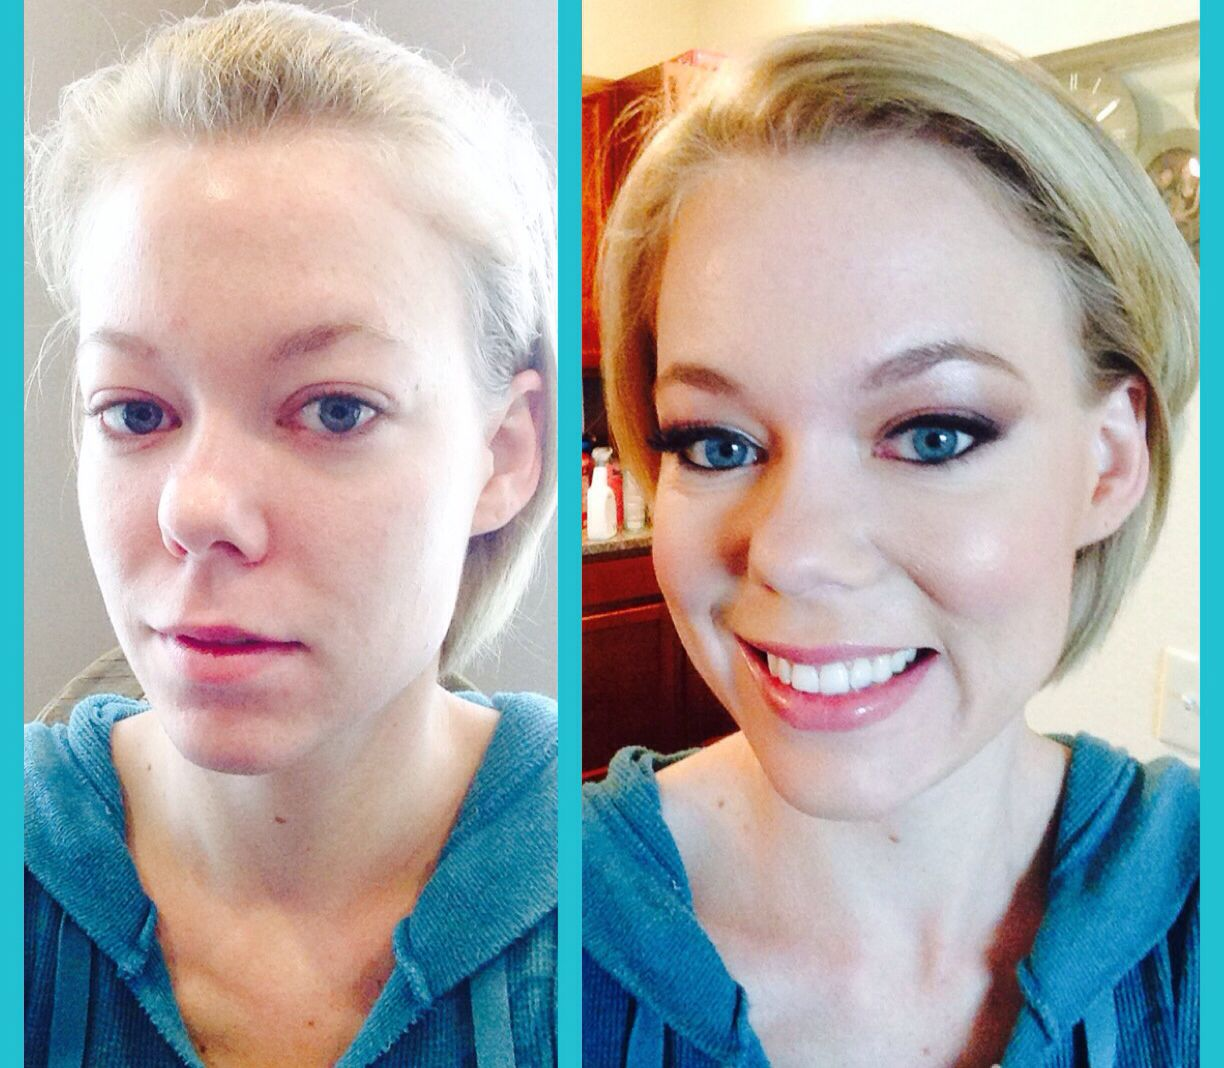 Airbrush Bridal Makeup Before And After : Airbrush makeup before and after Wedding Stuff Pinterest